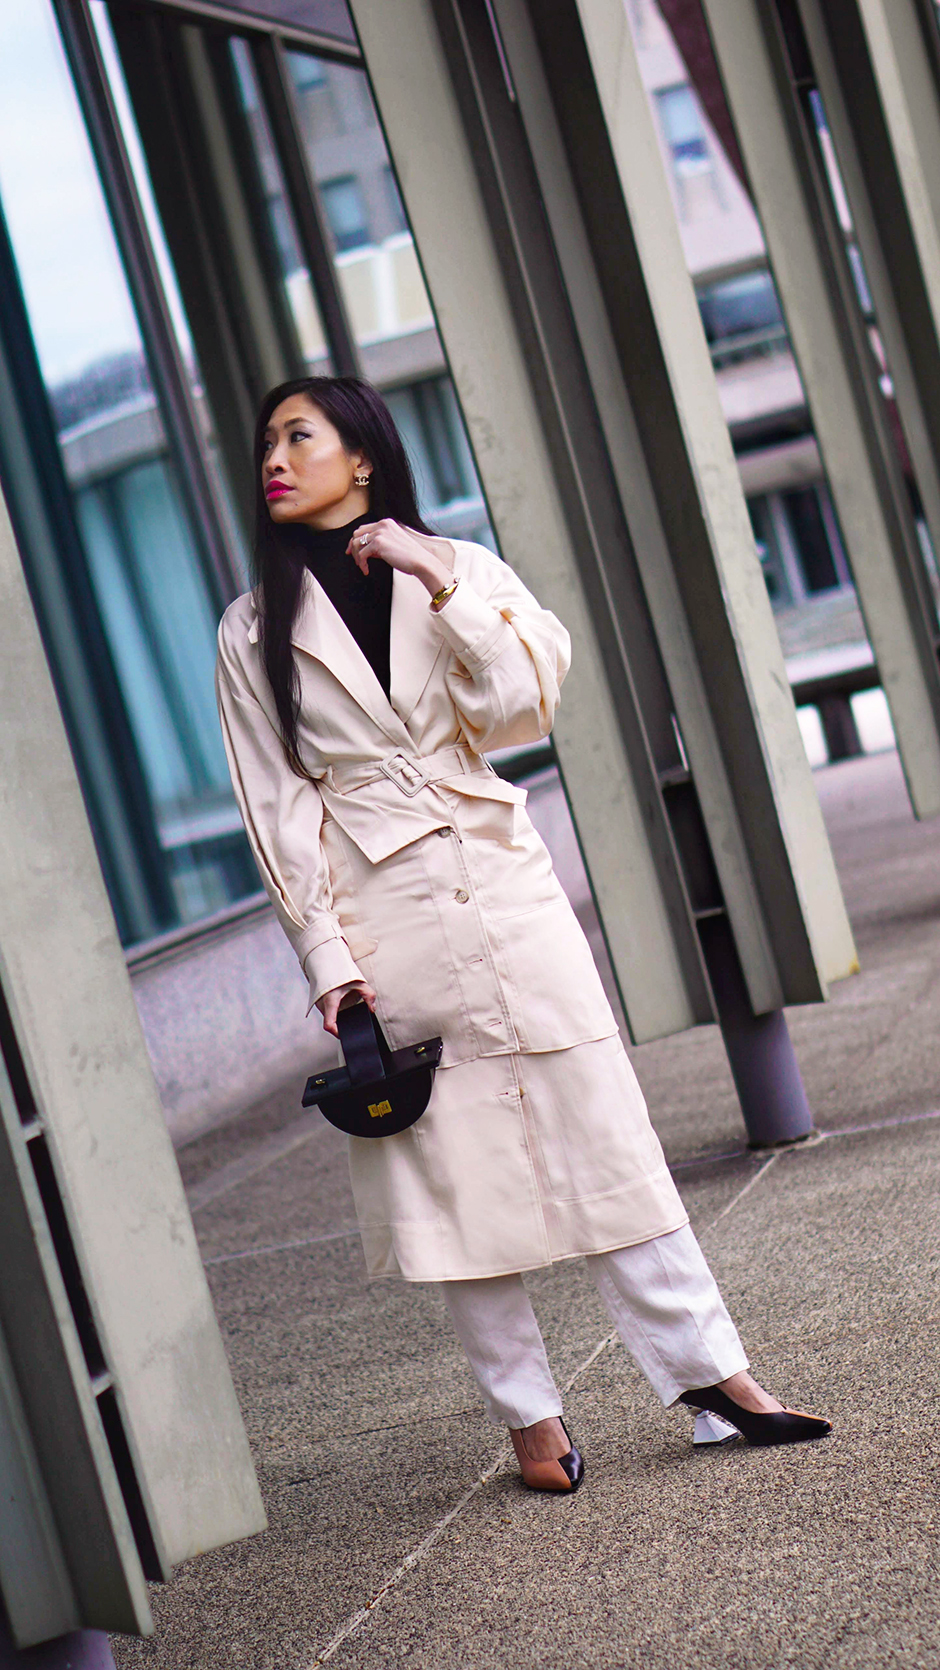 Jacquemus_Trench_Coat_Trend_Fashion_Paris_French_Fashion_Outfit_Inspiration_Street_Style_The_Sant_Yuul_Yie